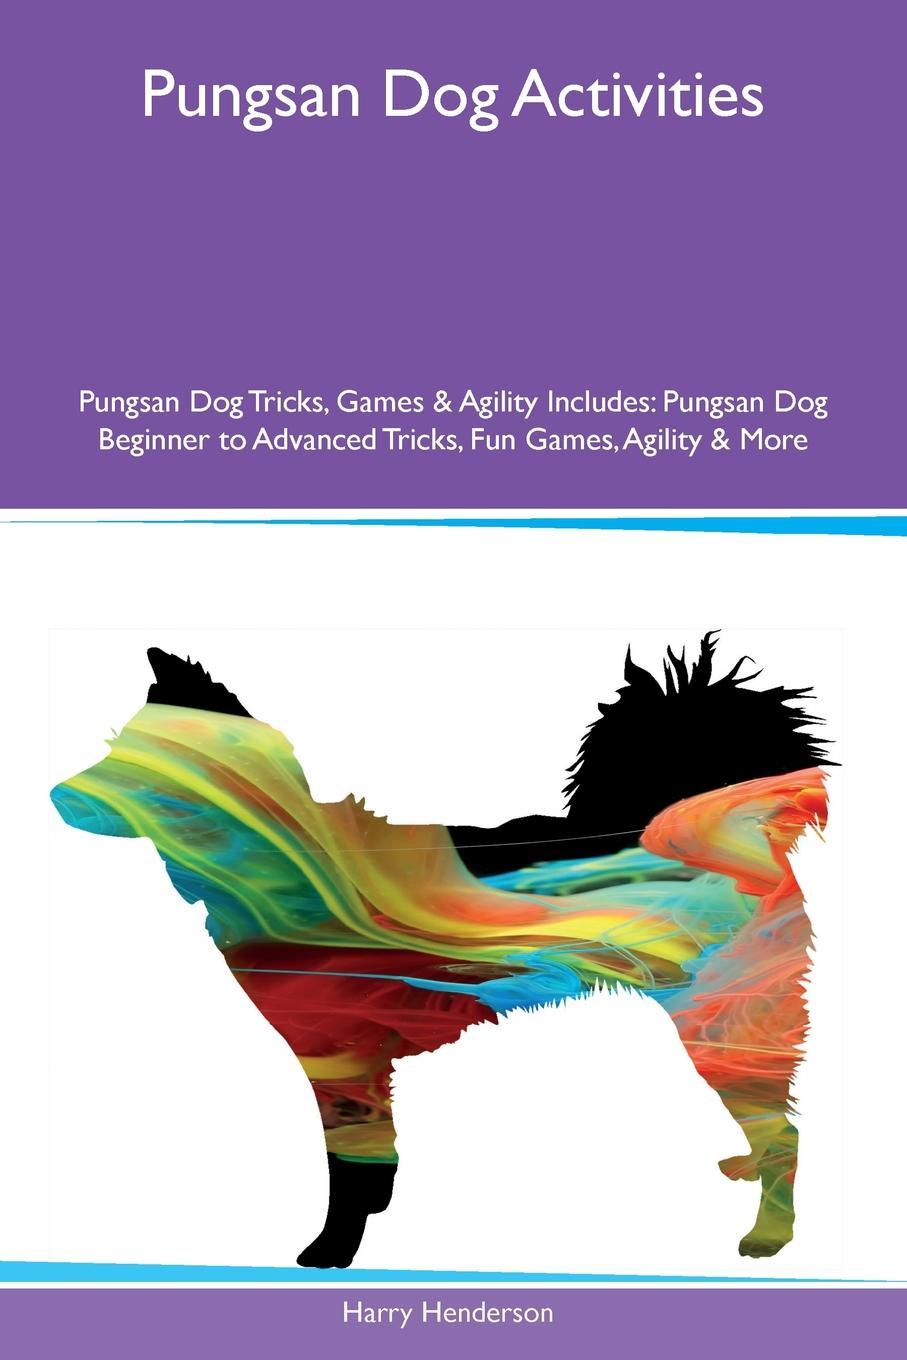 Pungsan Dog Activities Pungsan Dog Tricks, Games & Agility Includes. Pungsan Dog Beginner to Advanced Tricks, Fun Games, Agility & More